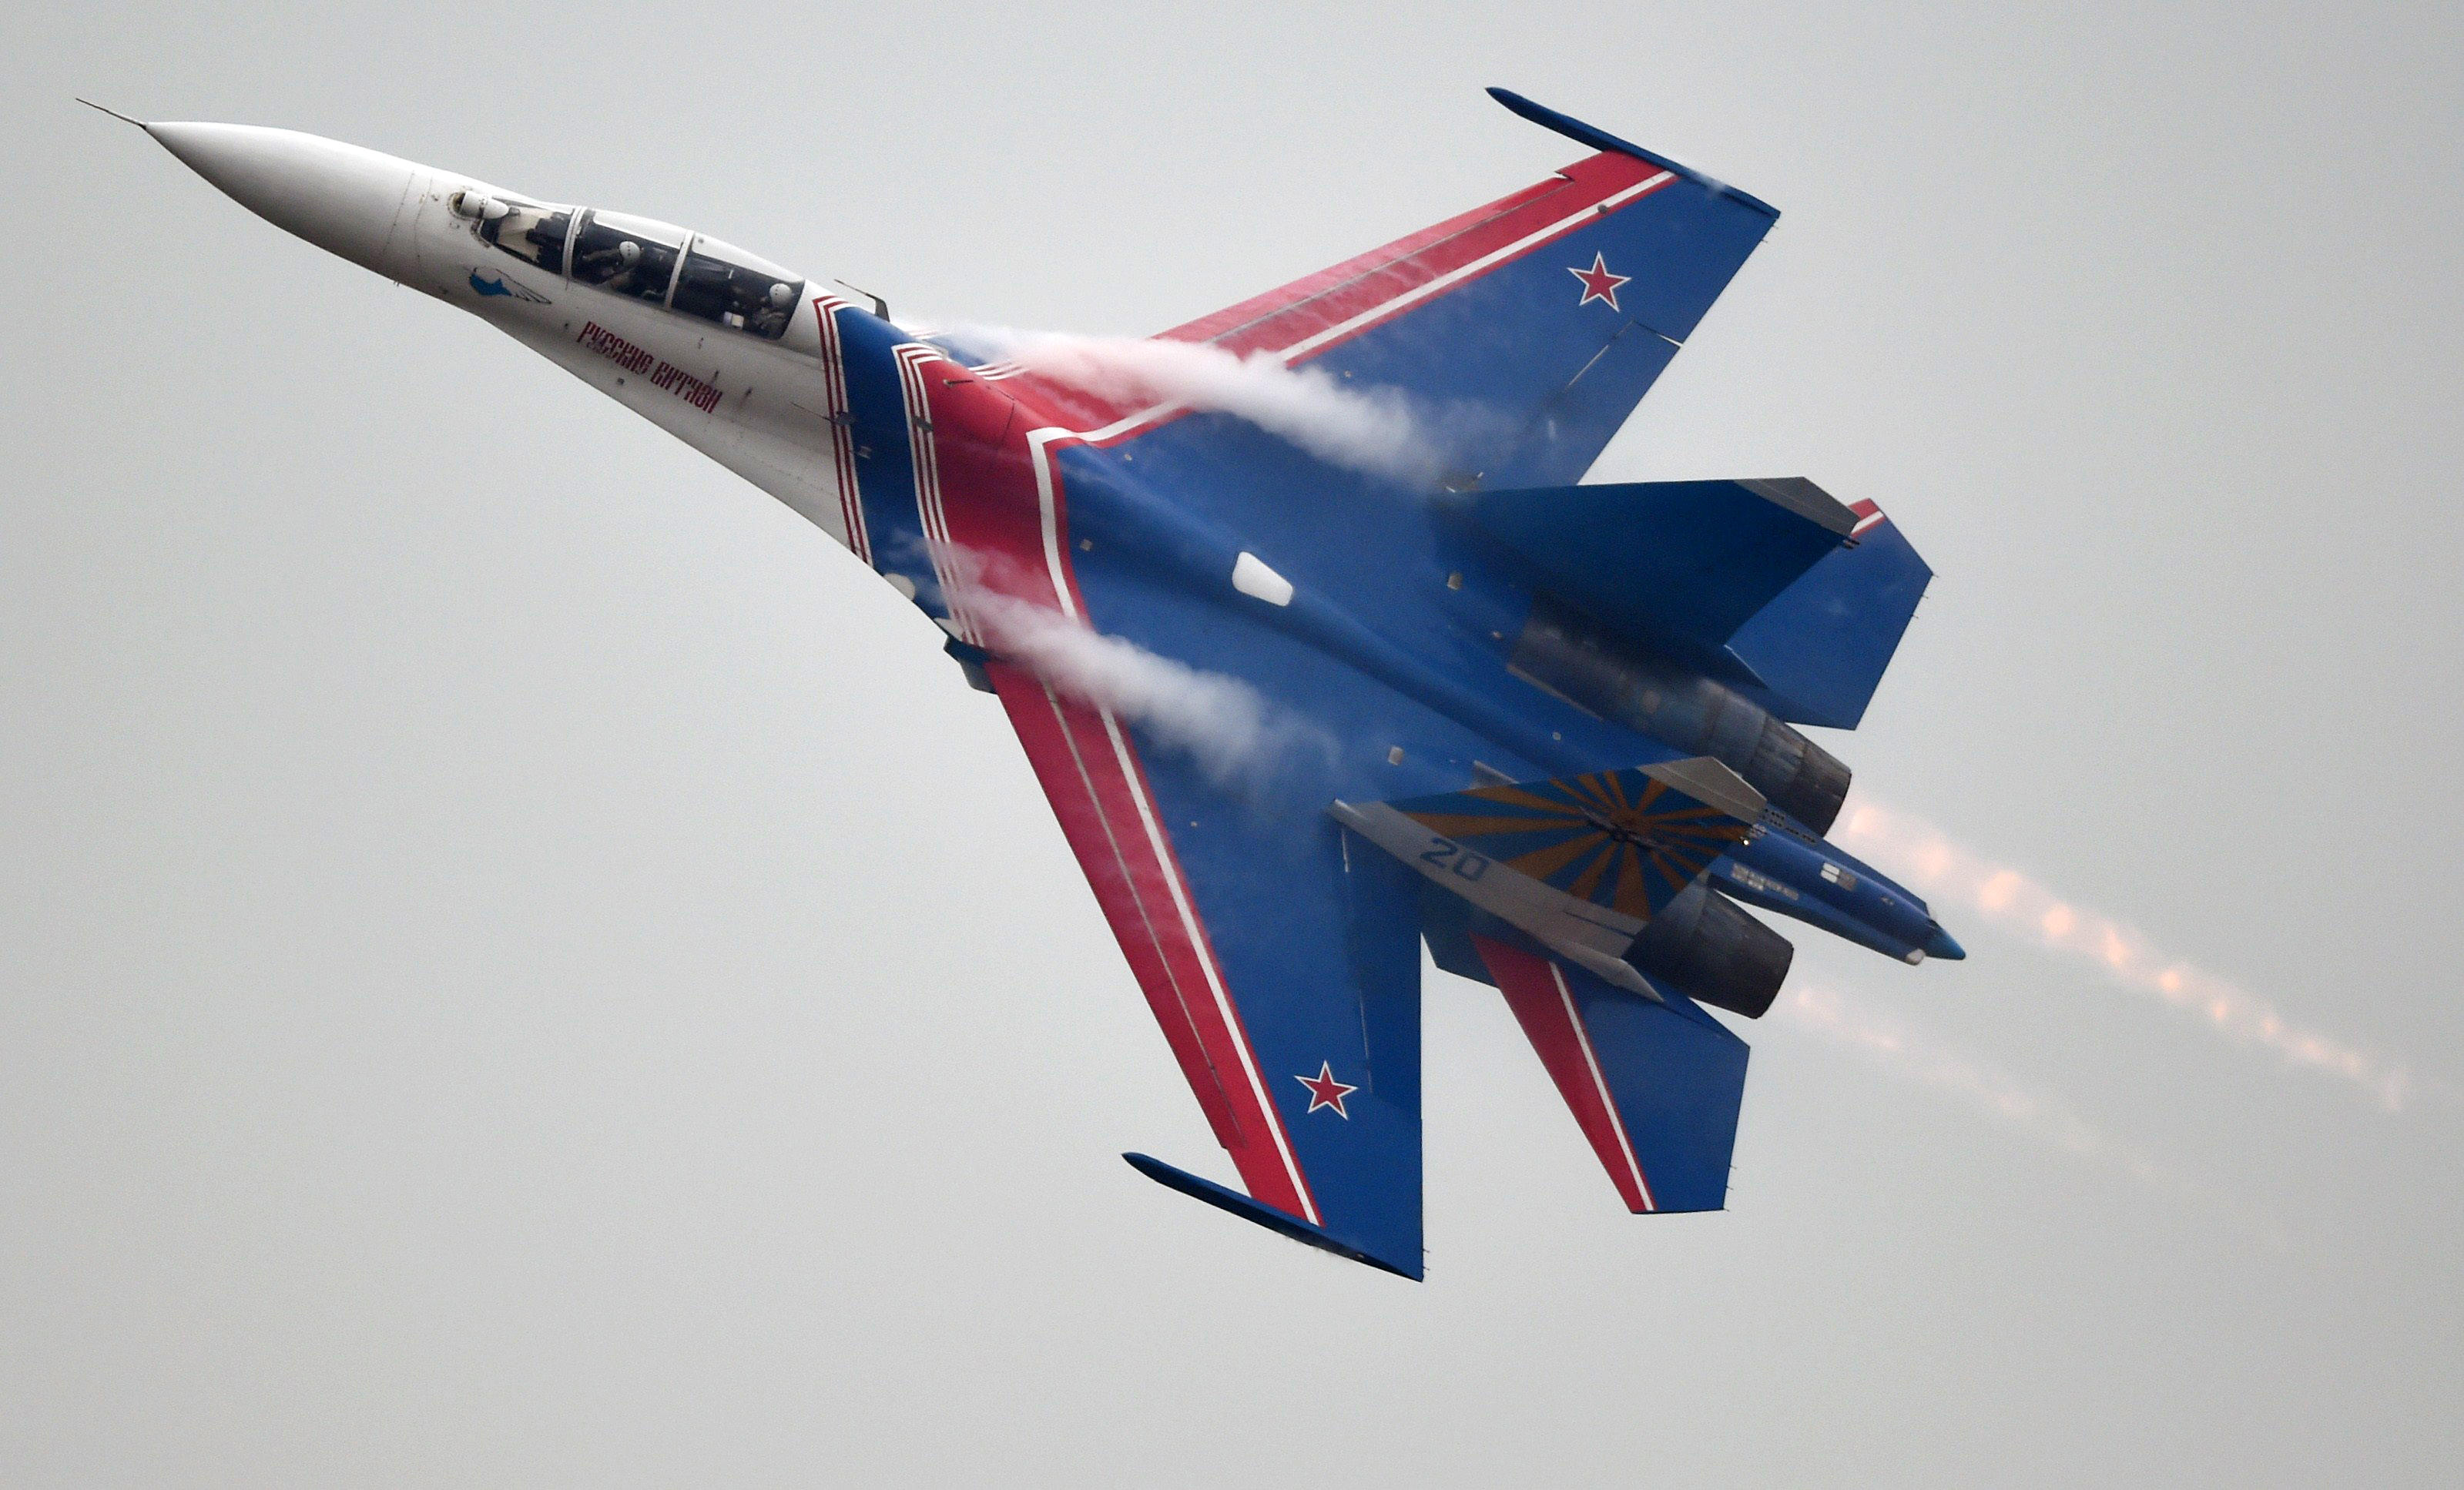 Armed Russia Jet Comes Within 5 Feet Of U.S. Military